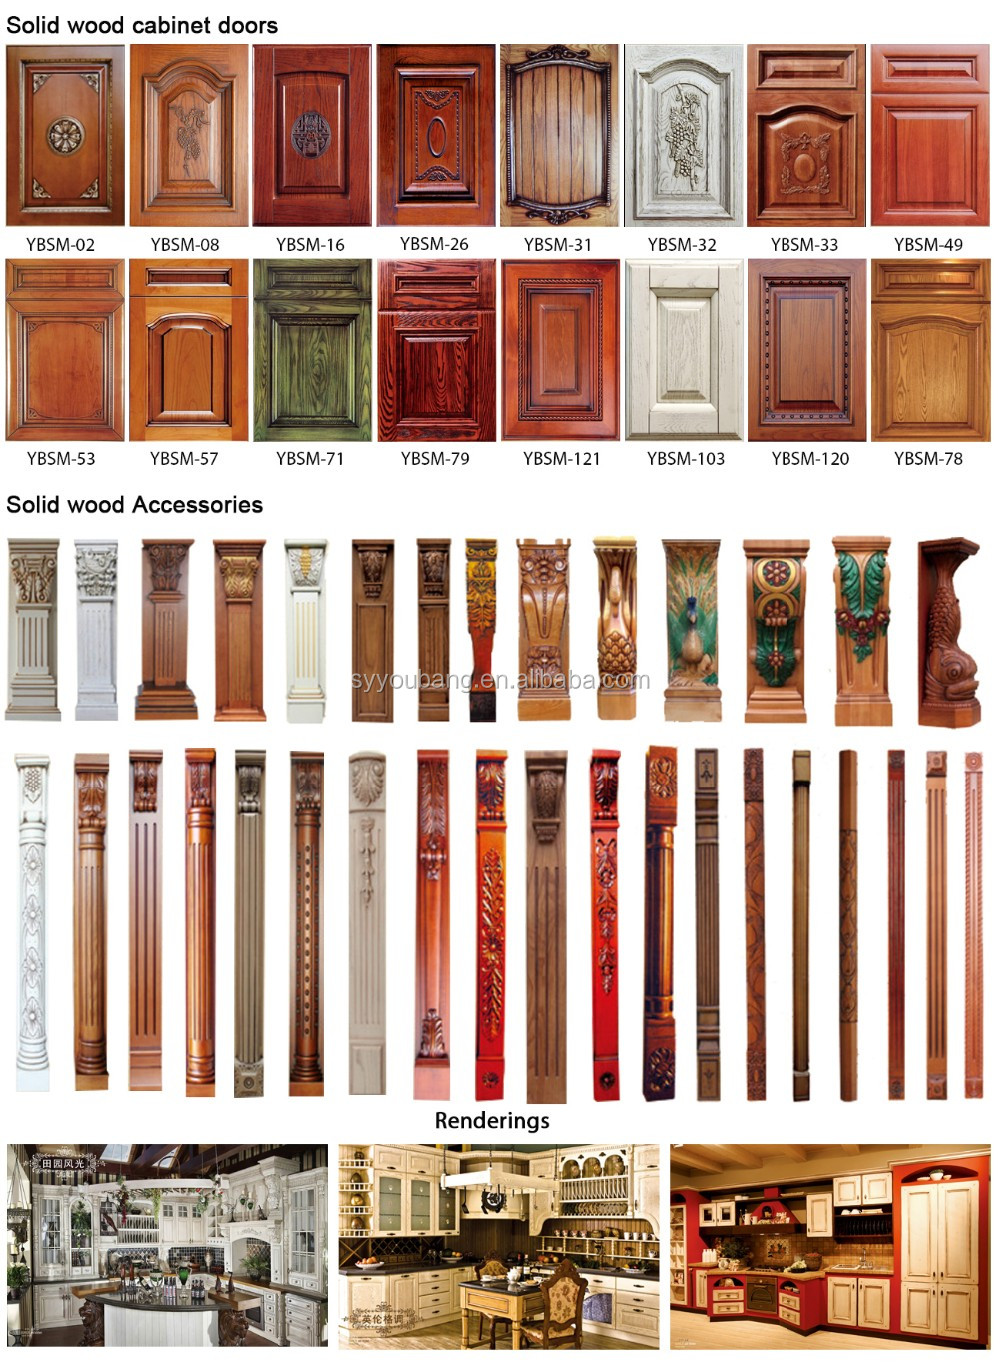 Solid Wood Cabinet Door Kitchen Cabinets Kits Buy Solid Wood Kitchen Cabinet Doors Kitchen